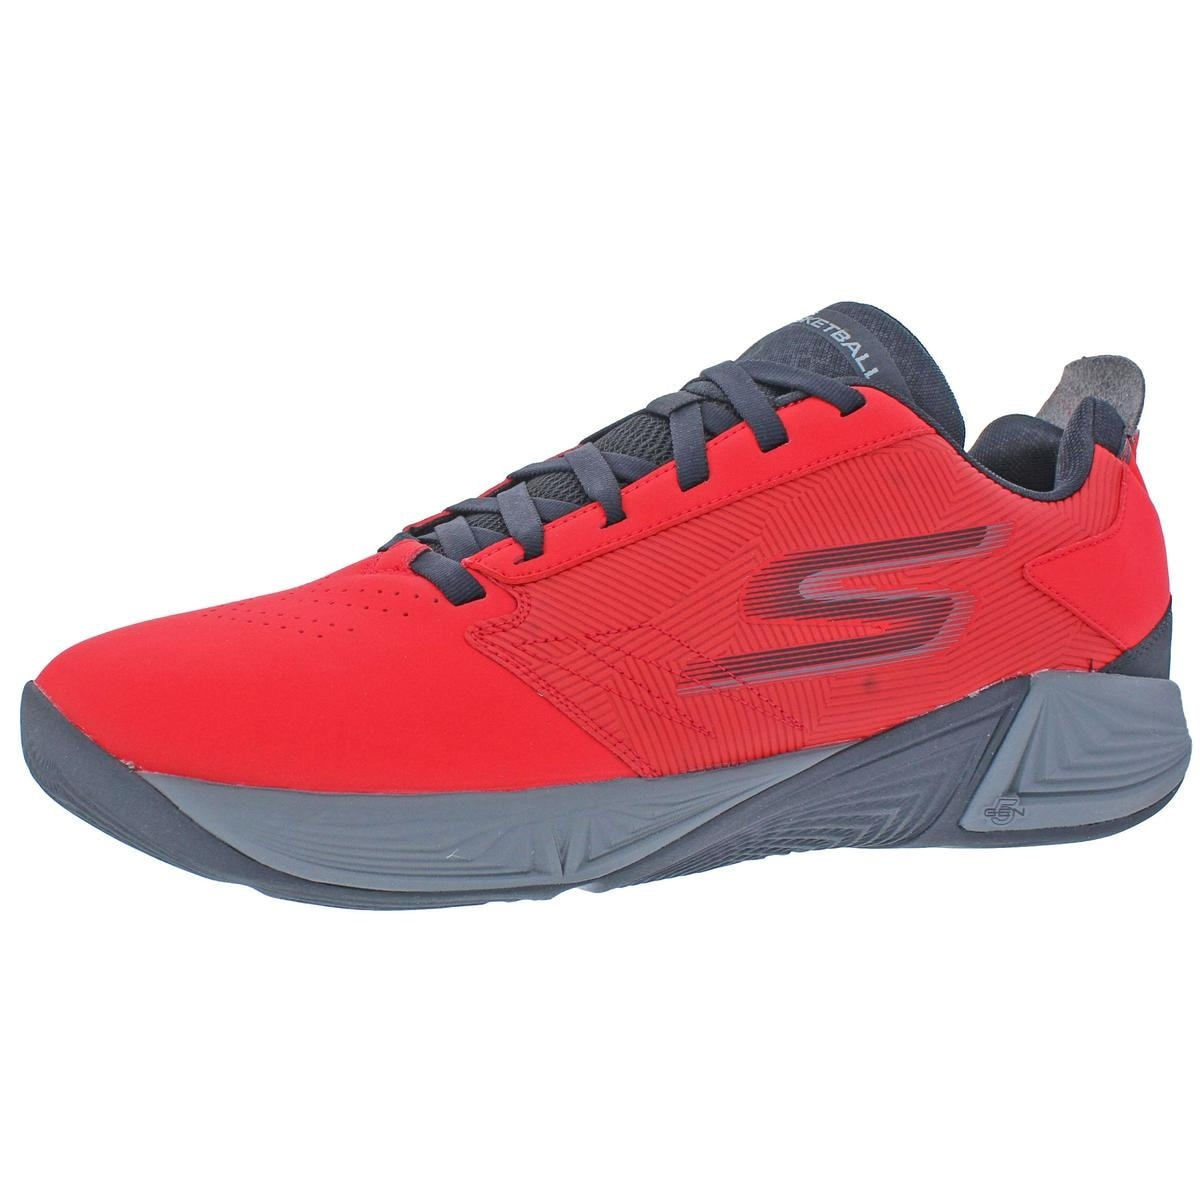 Skechers Torch LT Men's Synthetic Low Top Basketball Shoes Red Size 11 - 11  medium (d)